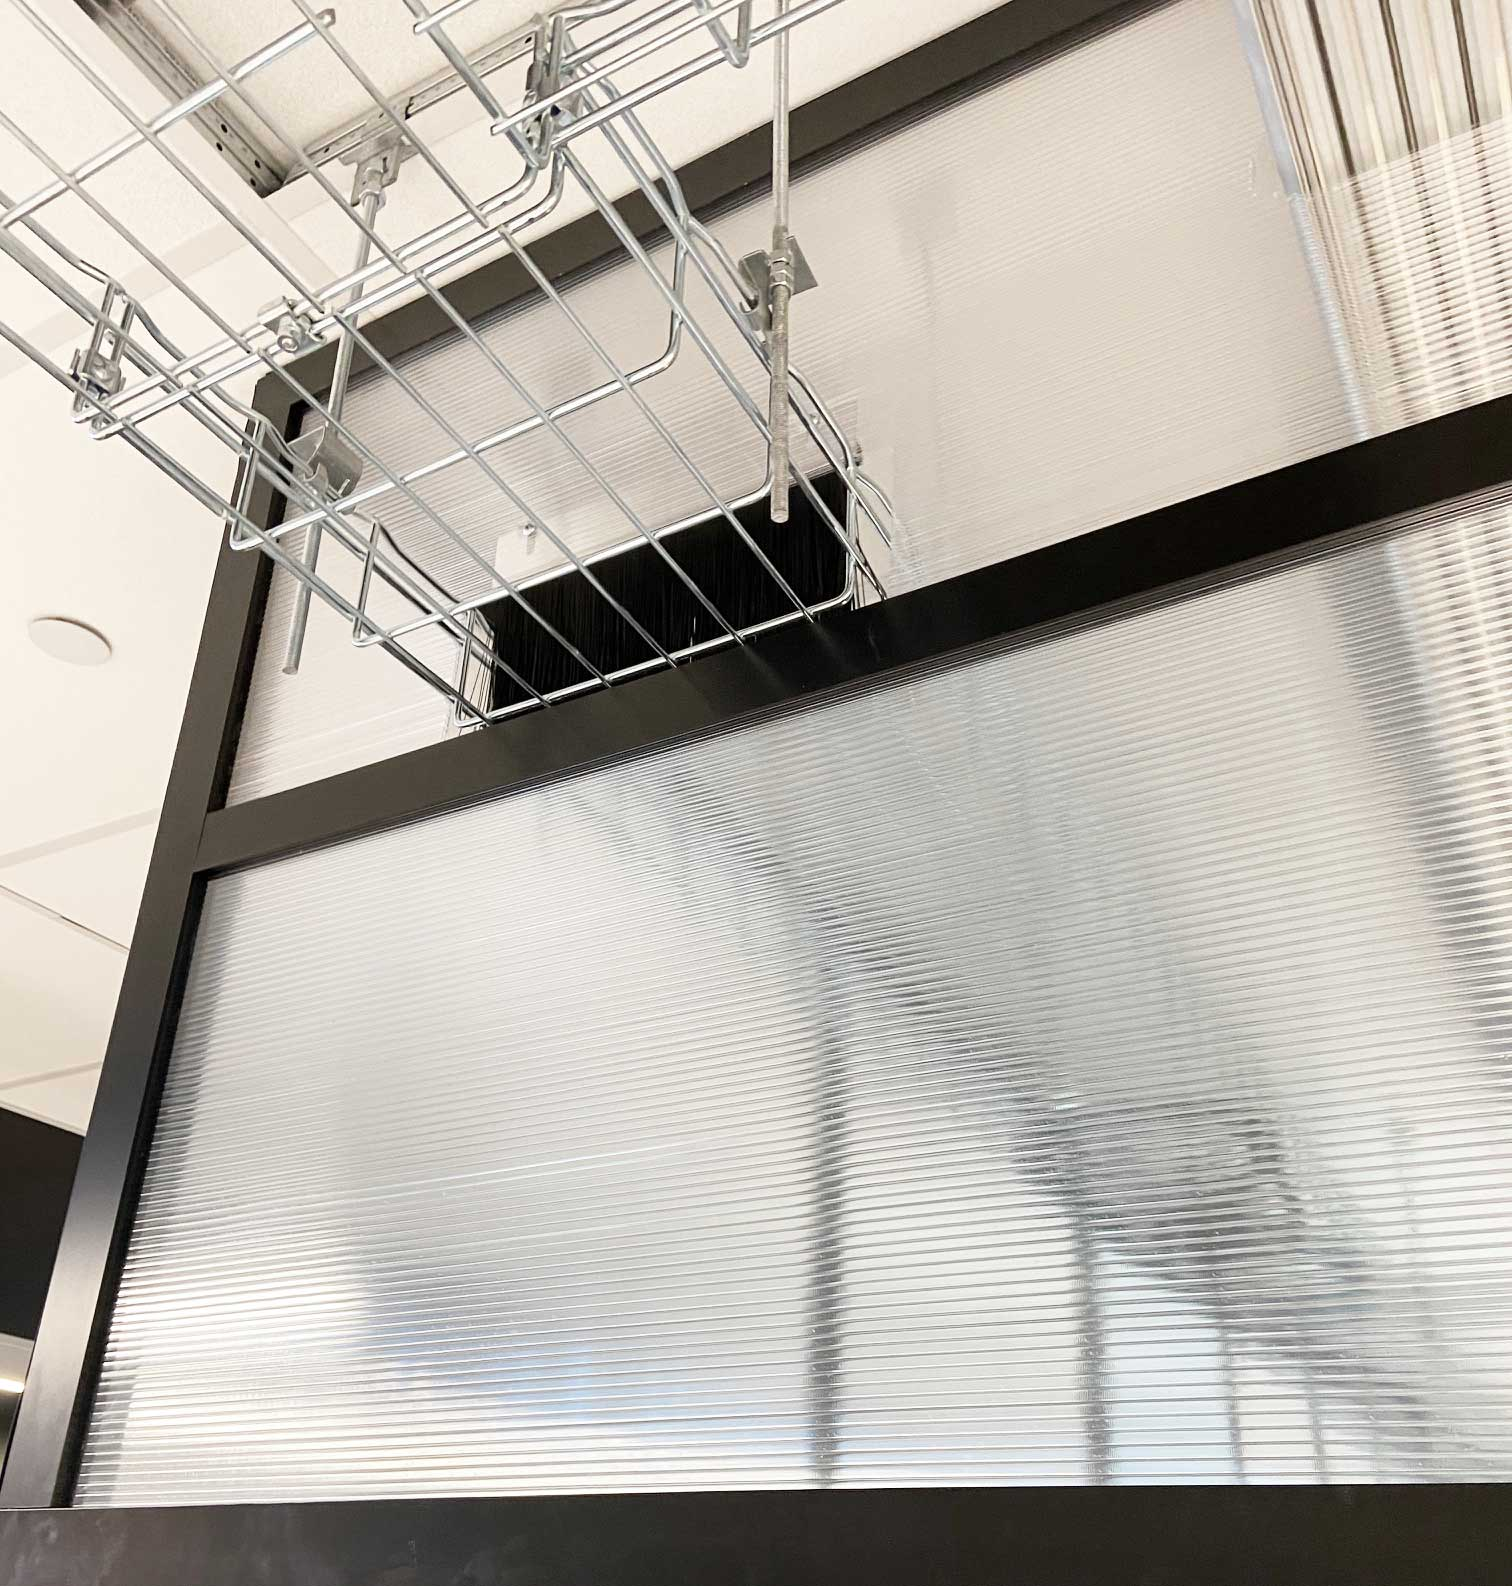 Fixed Vertical Aisle Containment Panels